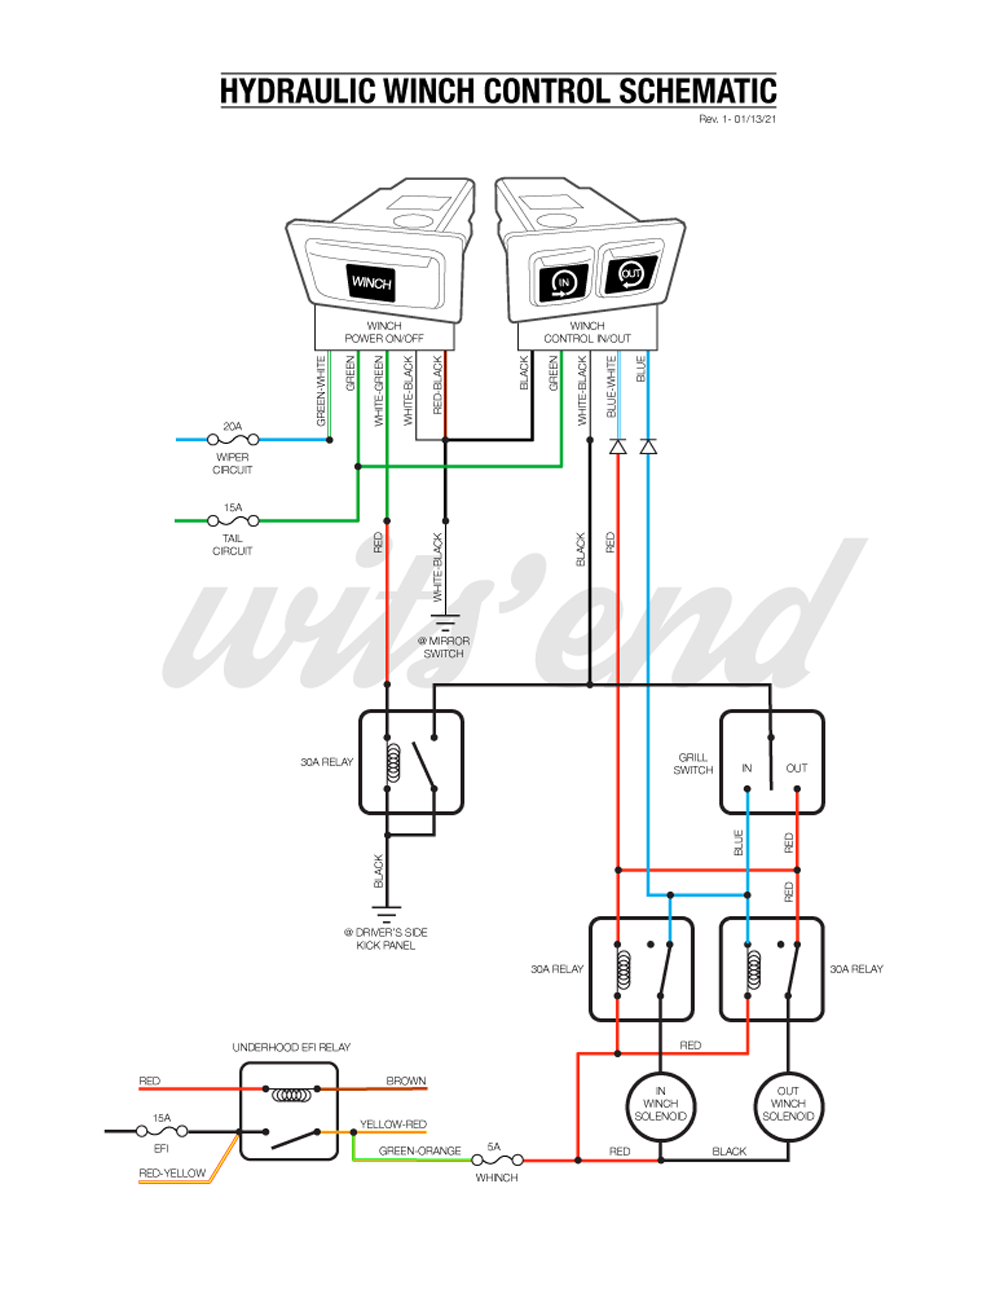 78a-hydraulic-winch-schematic-a.png